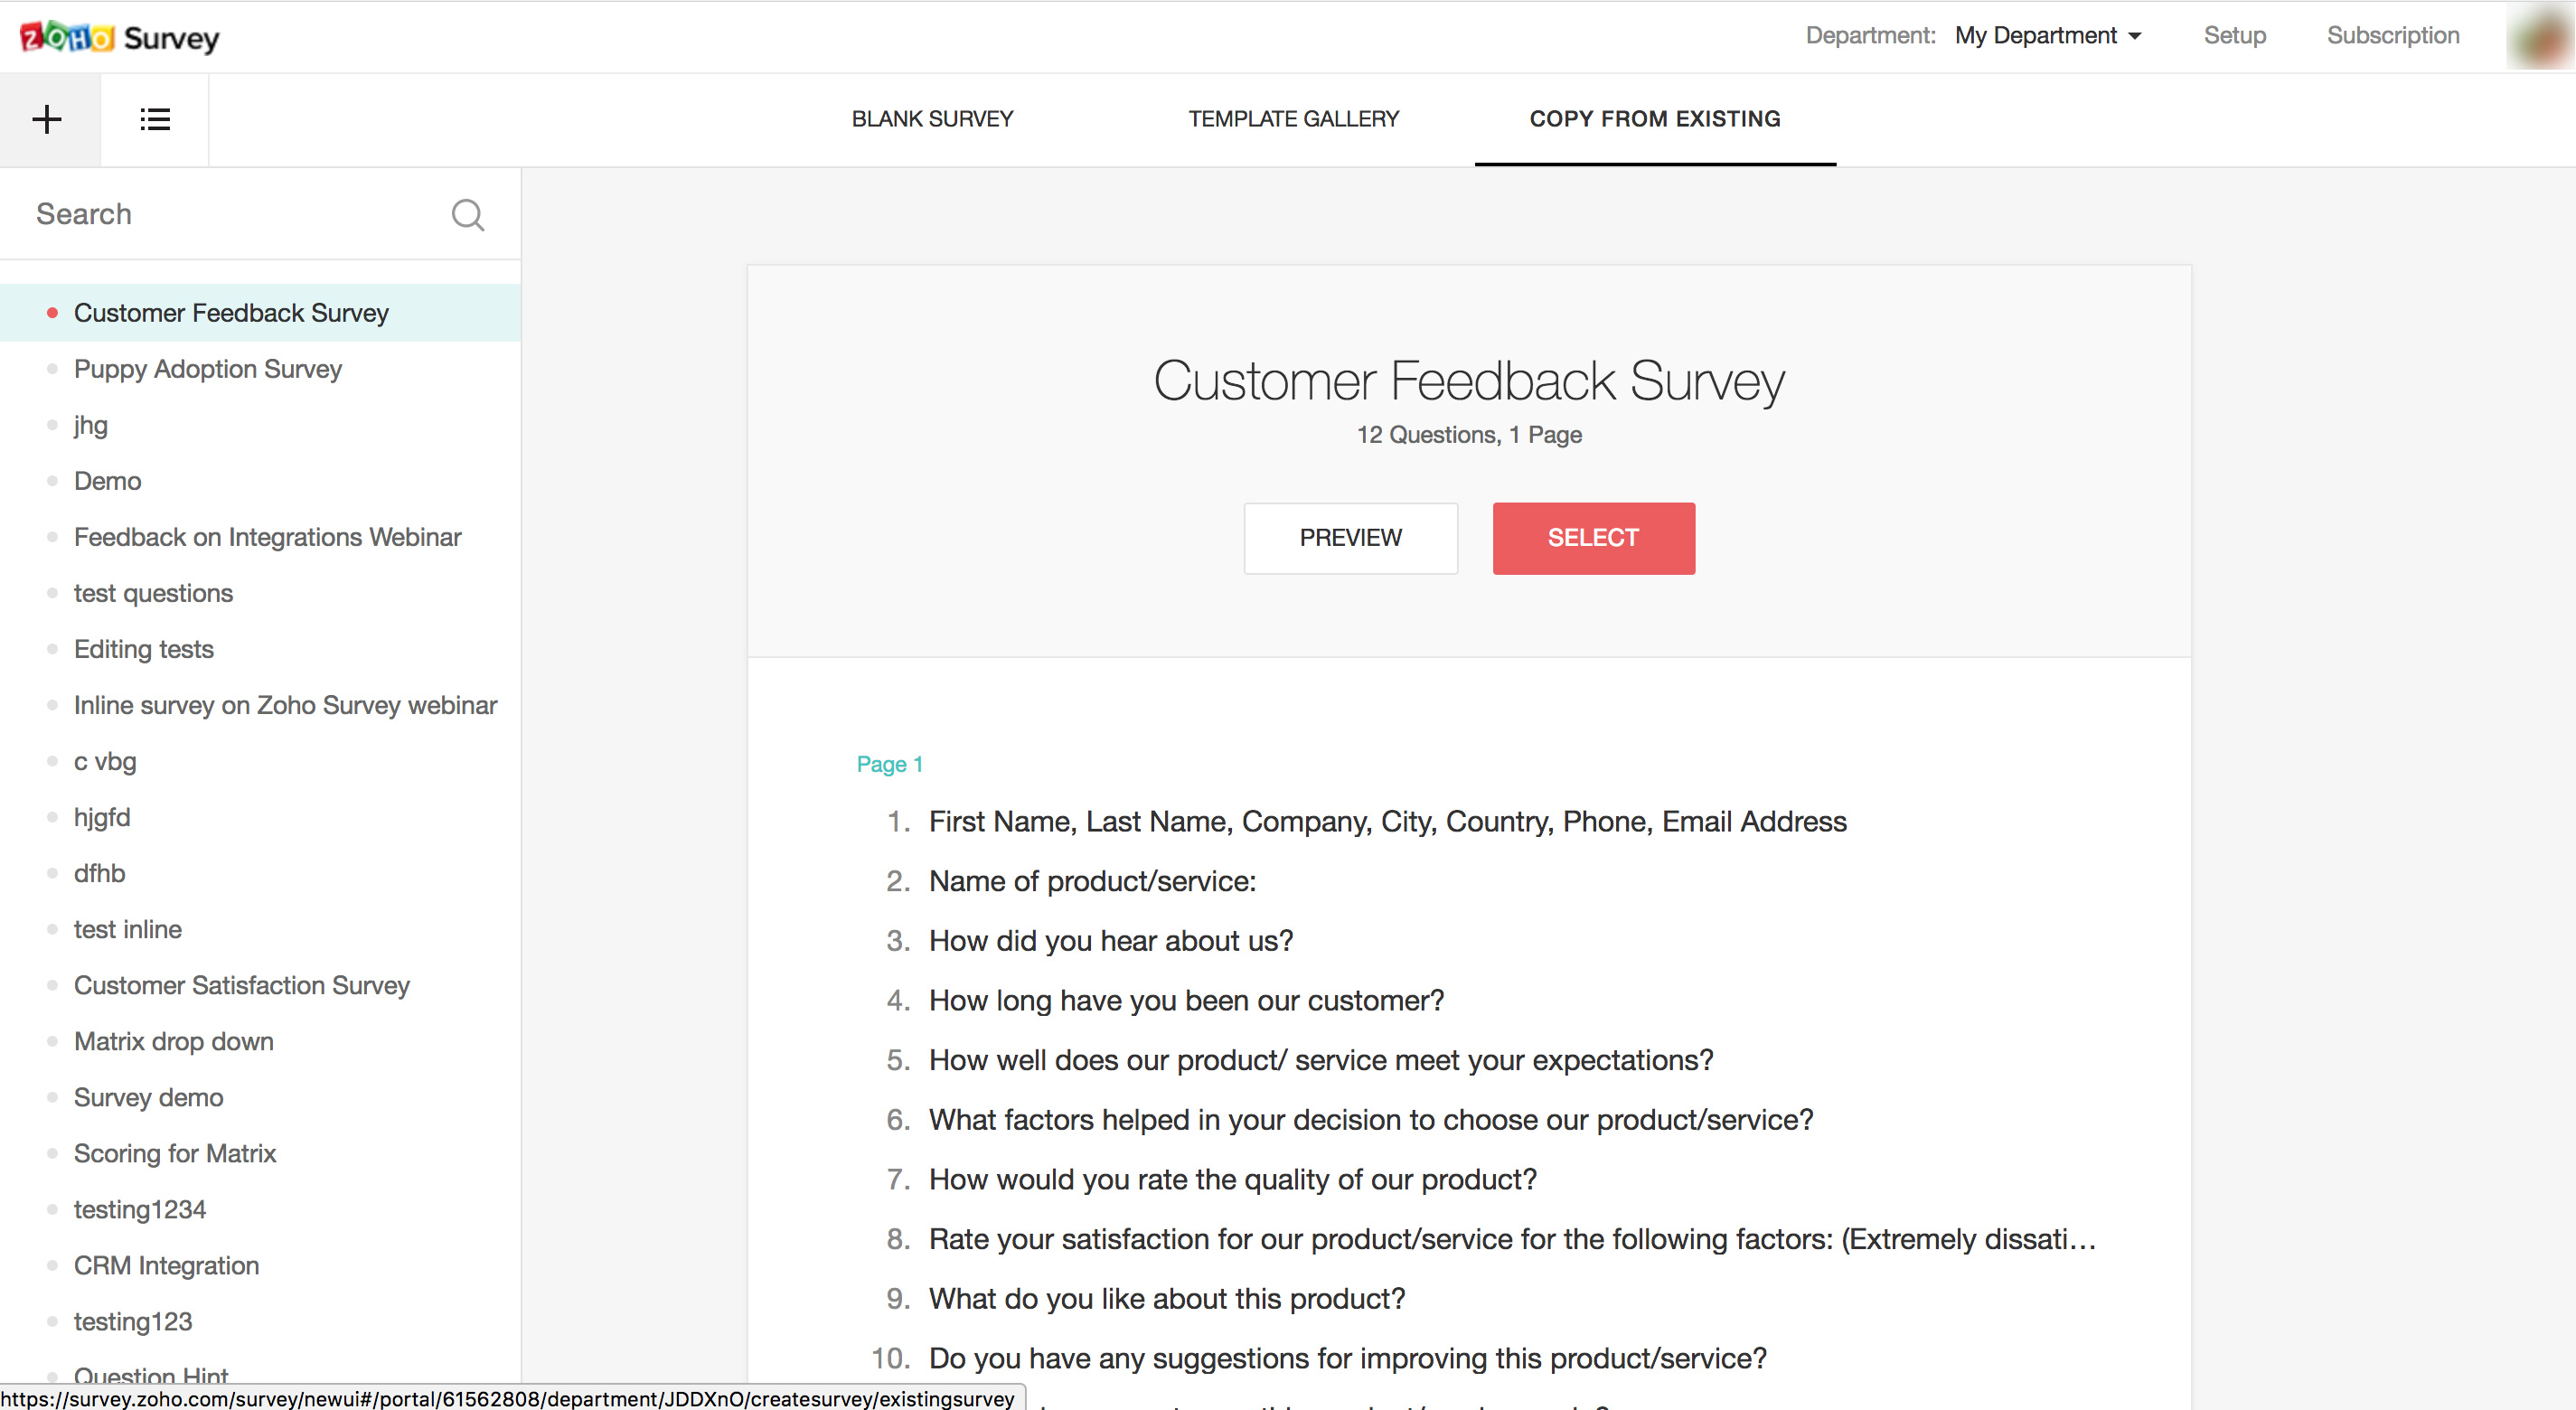 Create survey from existing survey